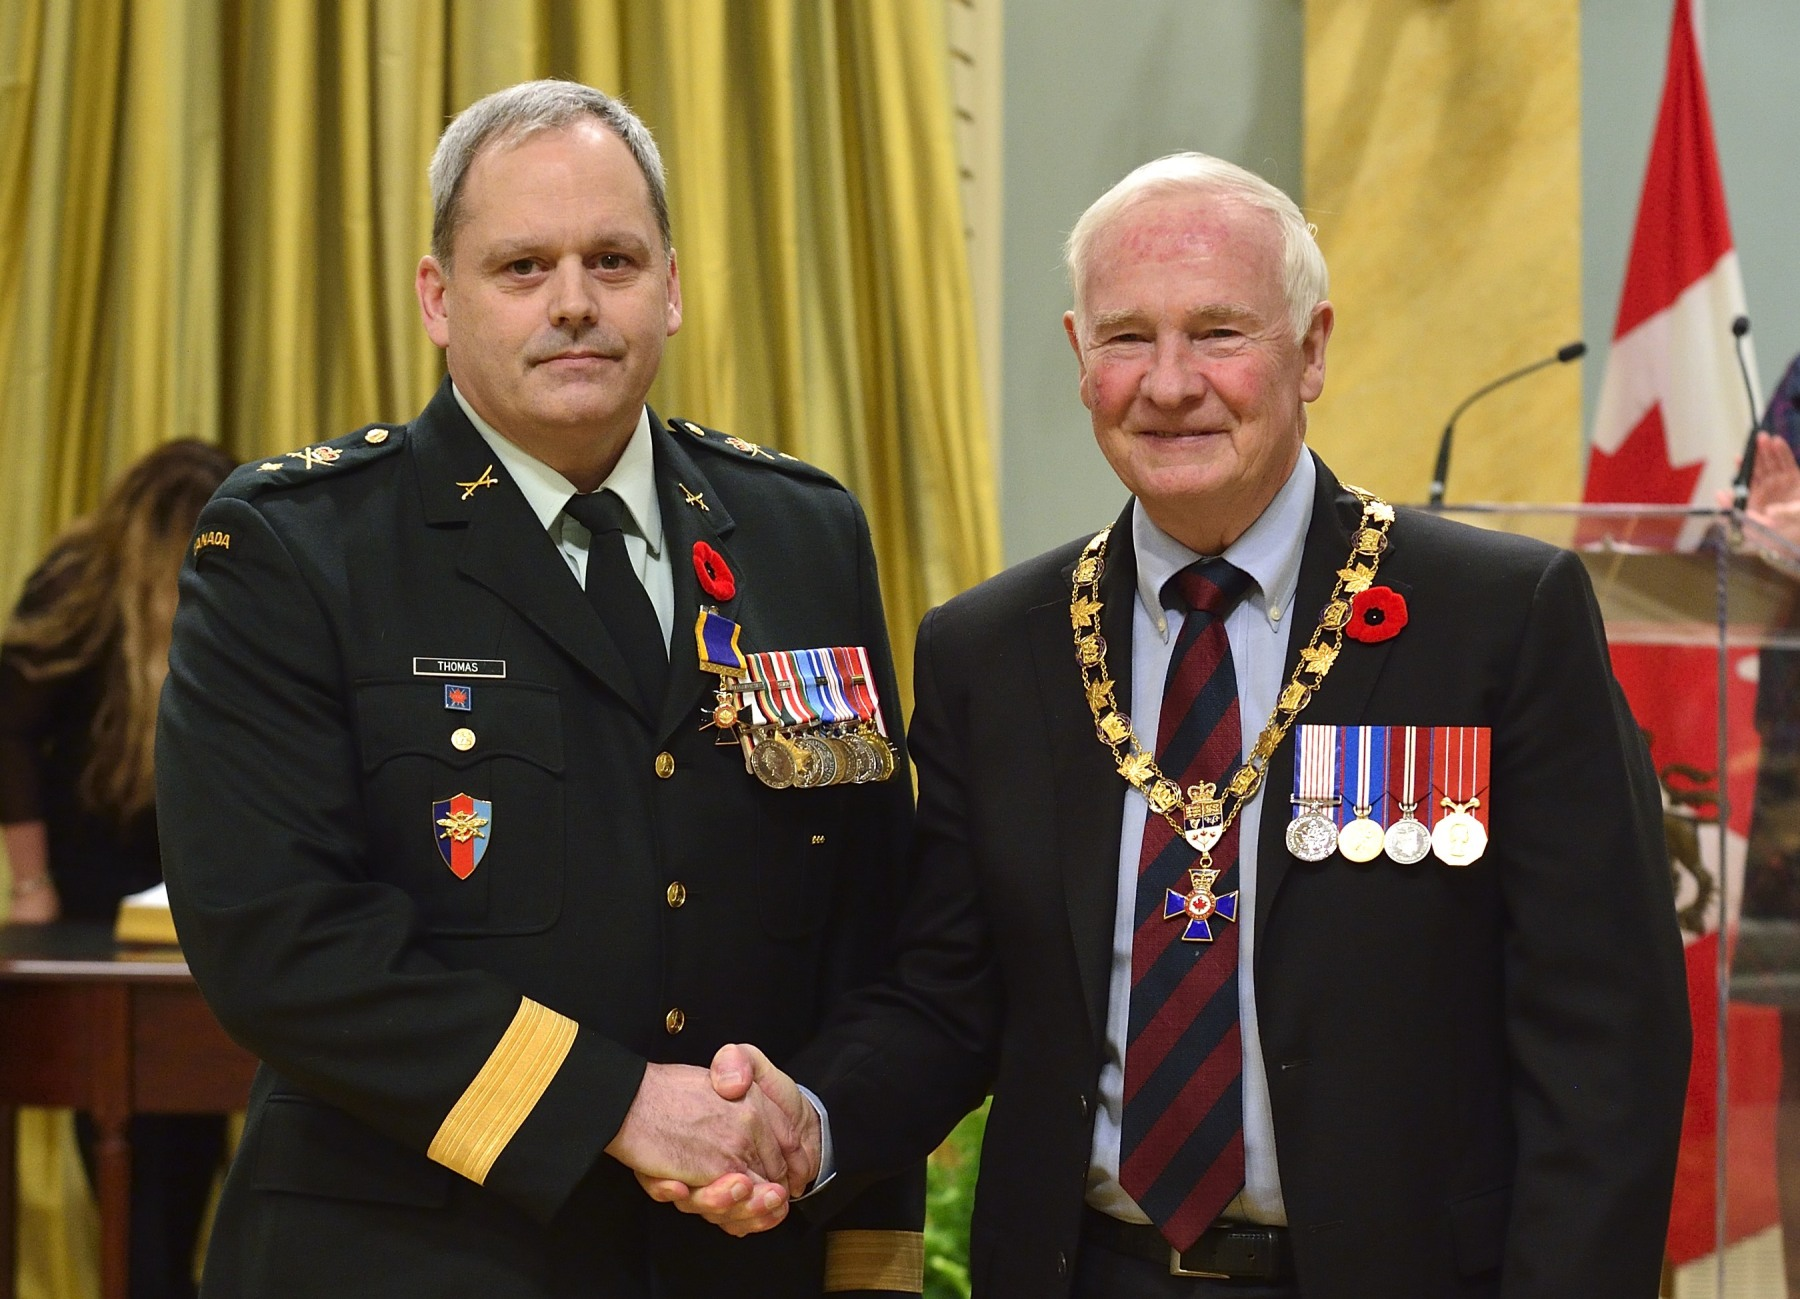 His Excellency presented the Order of Military Merit at the Officer level (O.M.M.) to Brigadier-General Lowell Thomas, O.M.M., C.D., Canadian Manoeuvre Training Centre, Denwood, Alta.